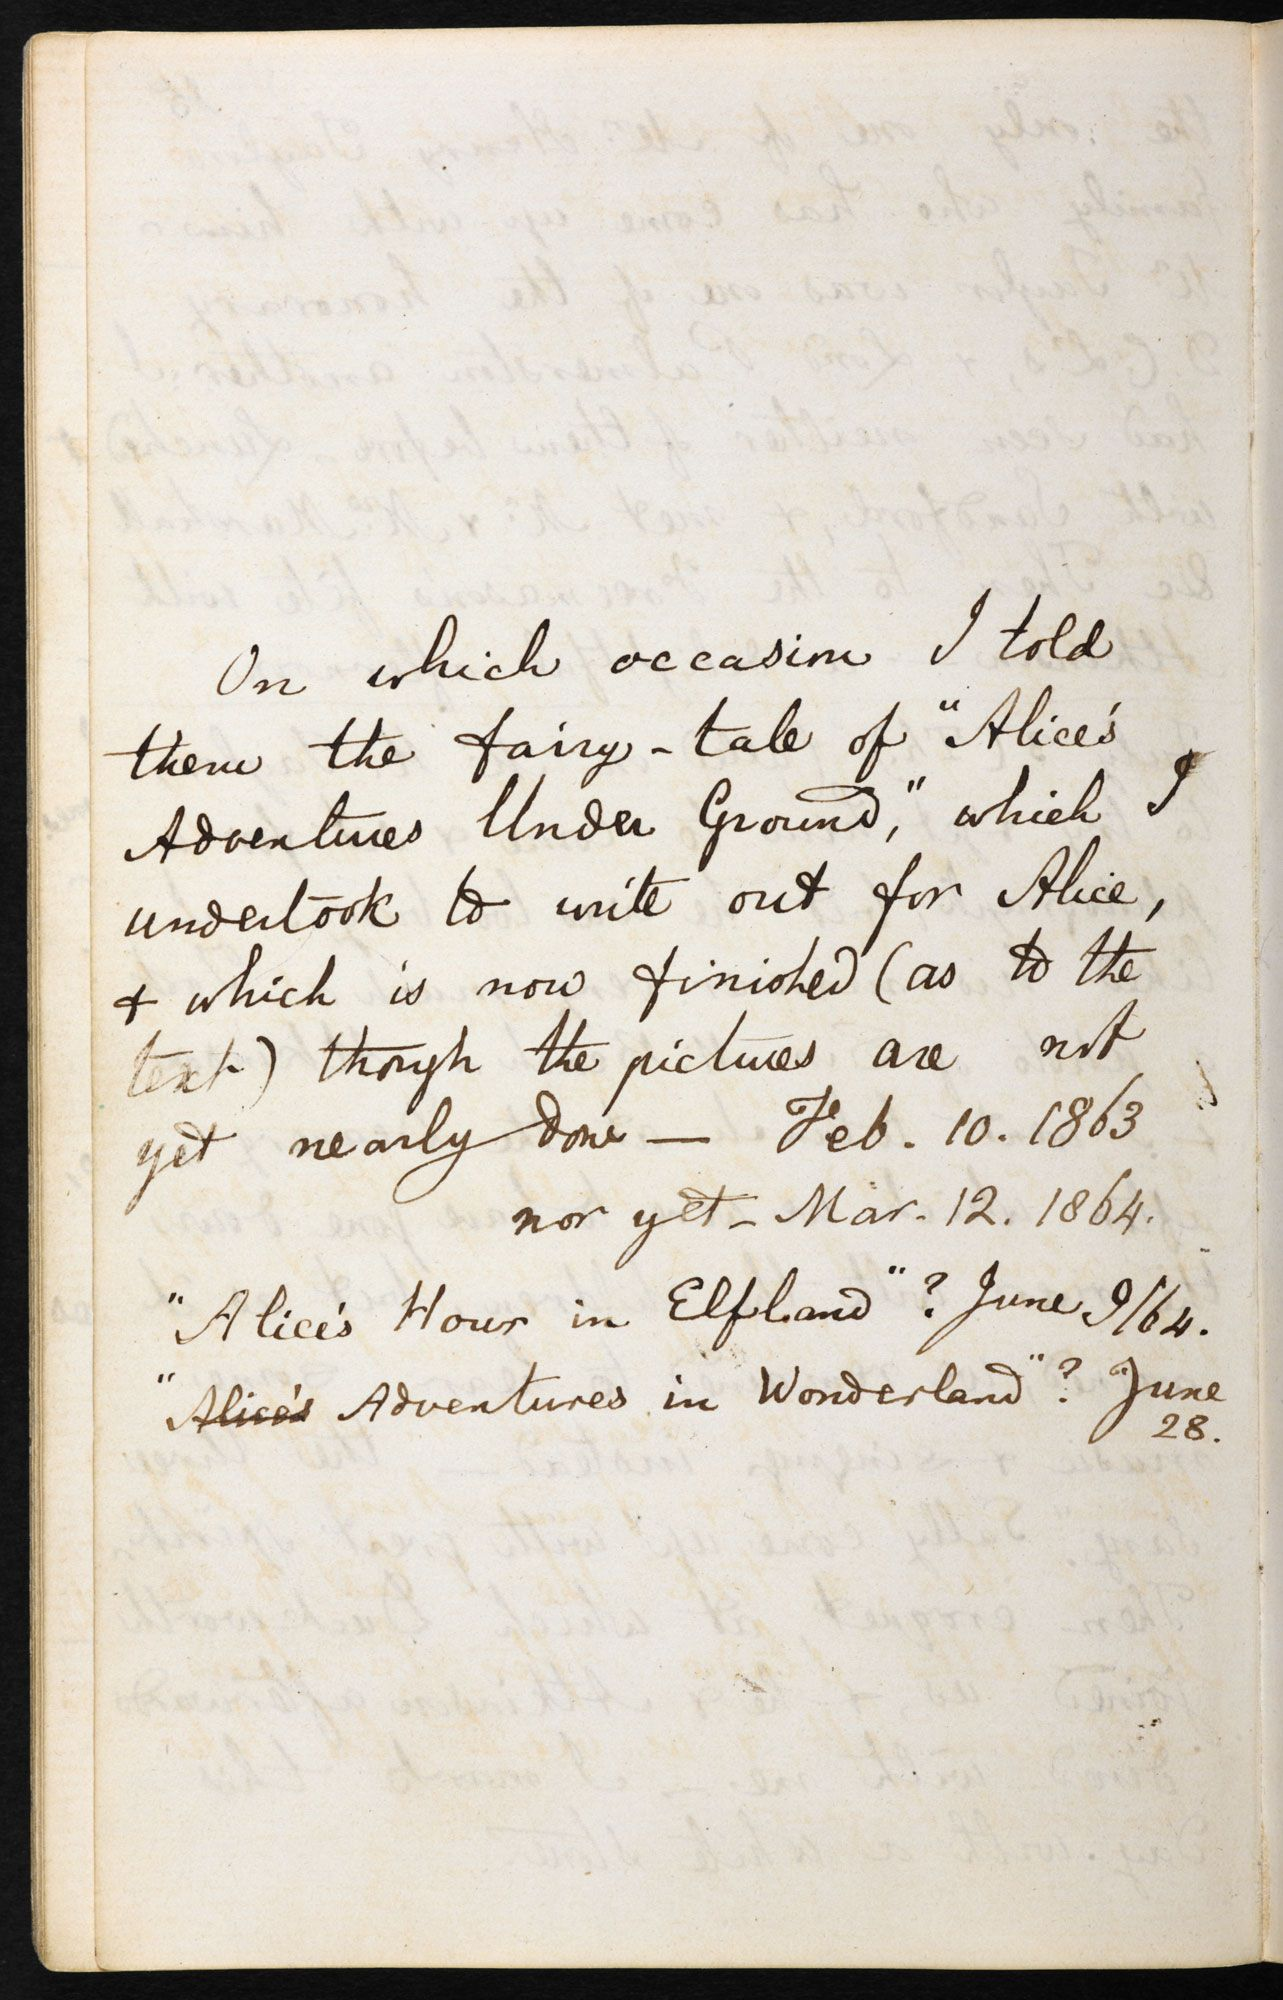 Lewis Carroll's diaries on telling the story of #AliceinWonderland for the first time. Explore this item on the British Library website.